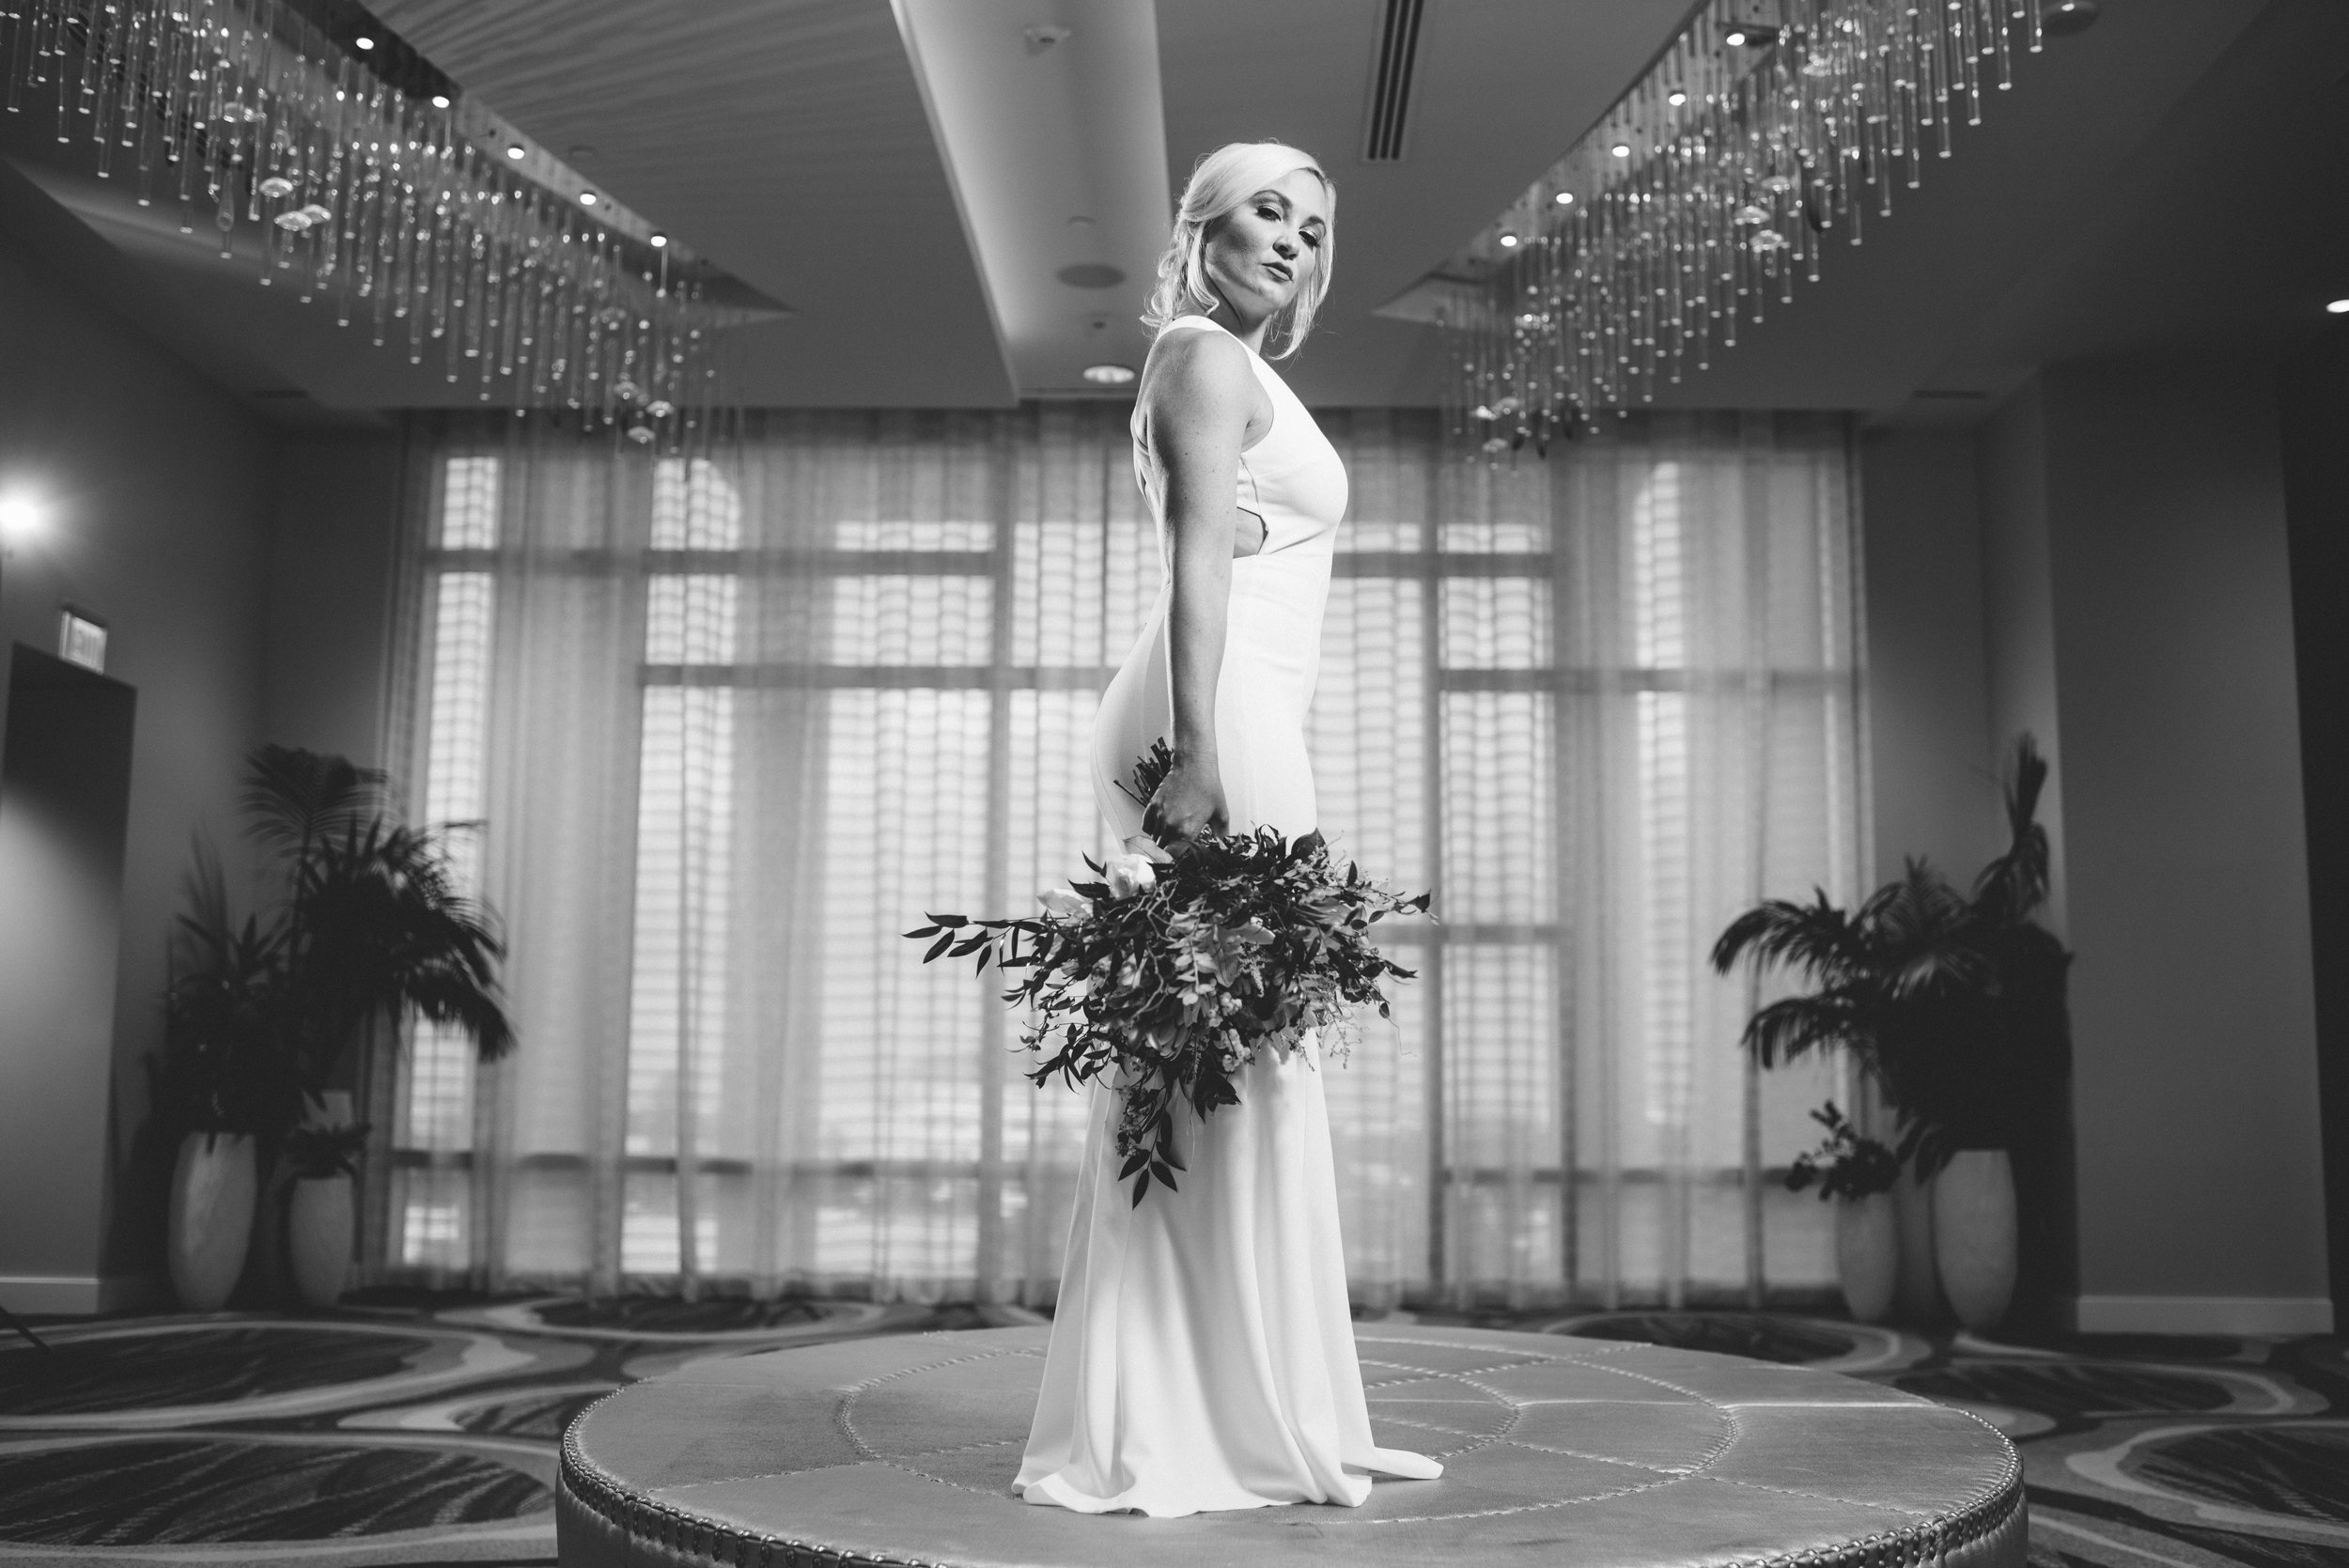 Bridal Consult - Come meet our team and tour our full service makeup and photography studio in south Tampa.